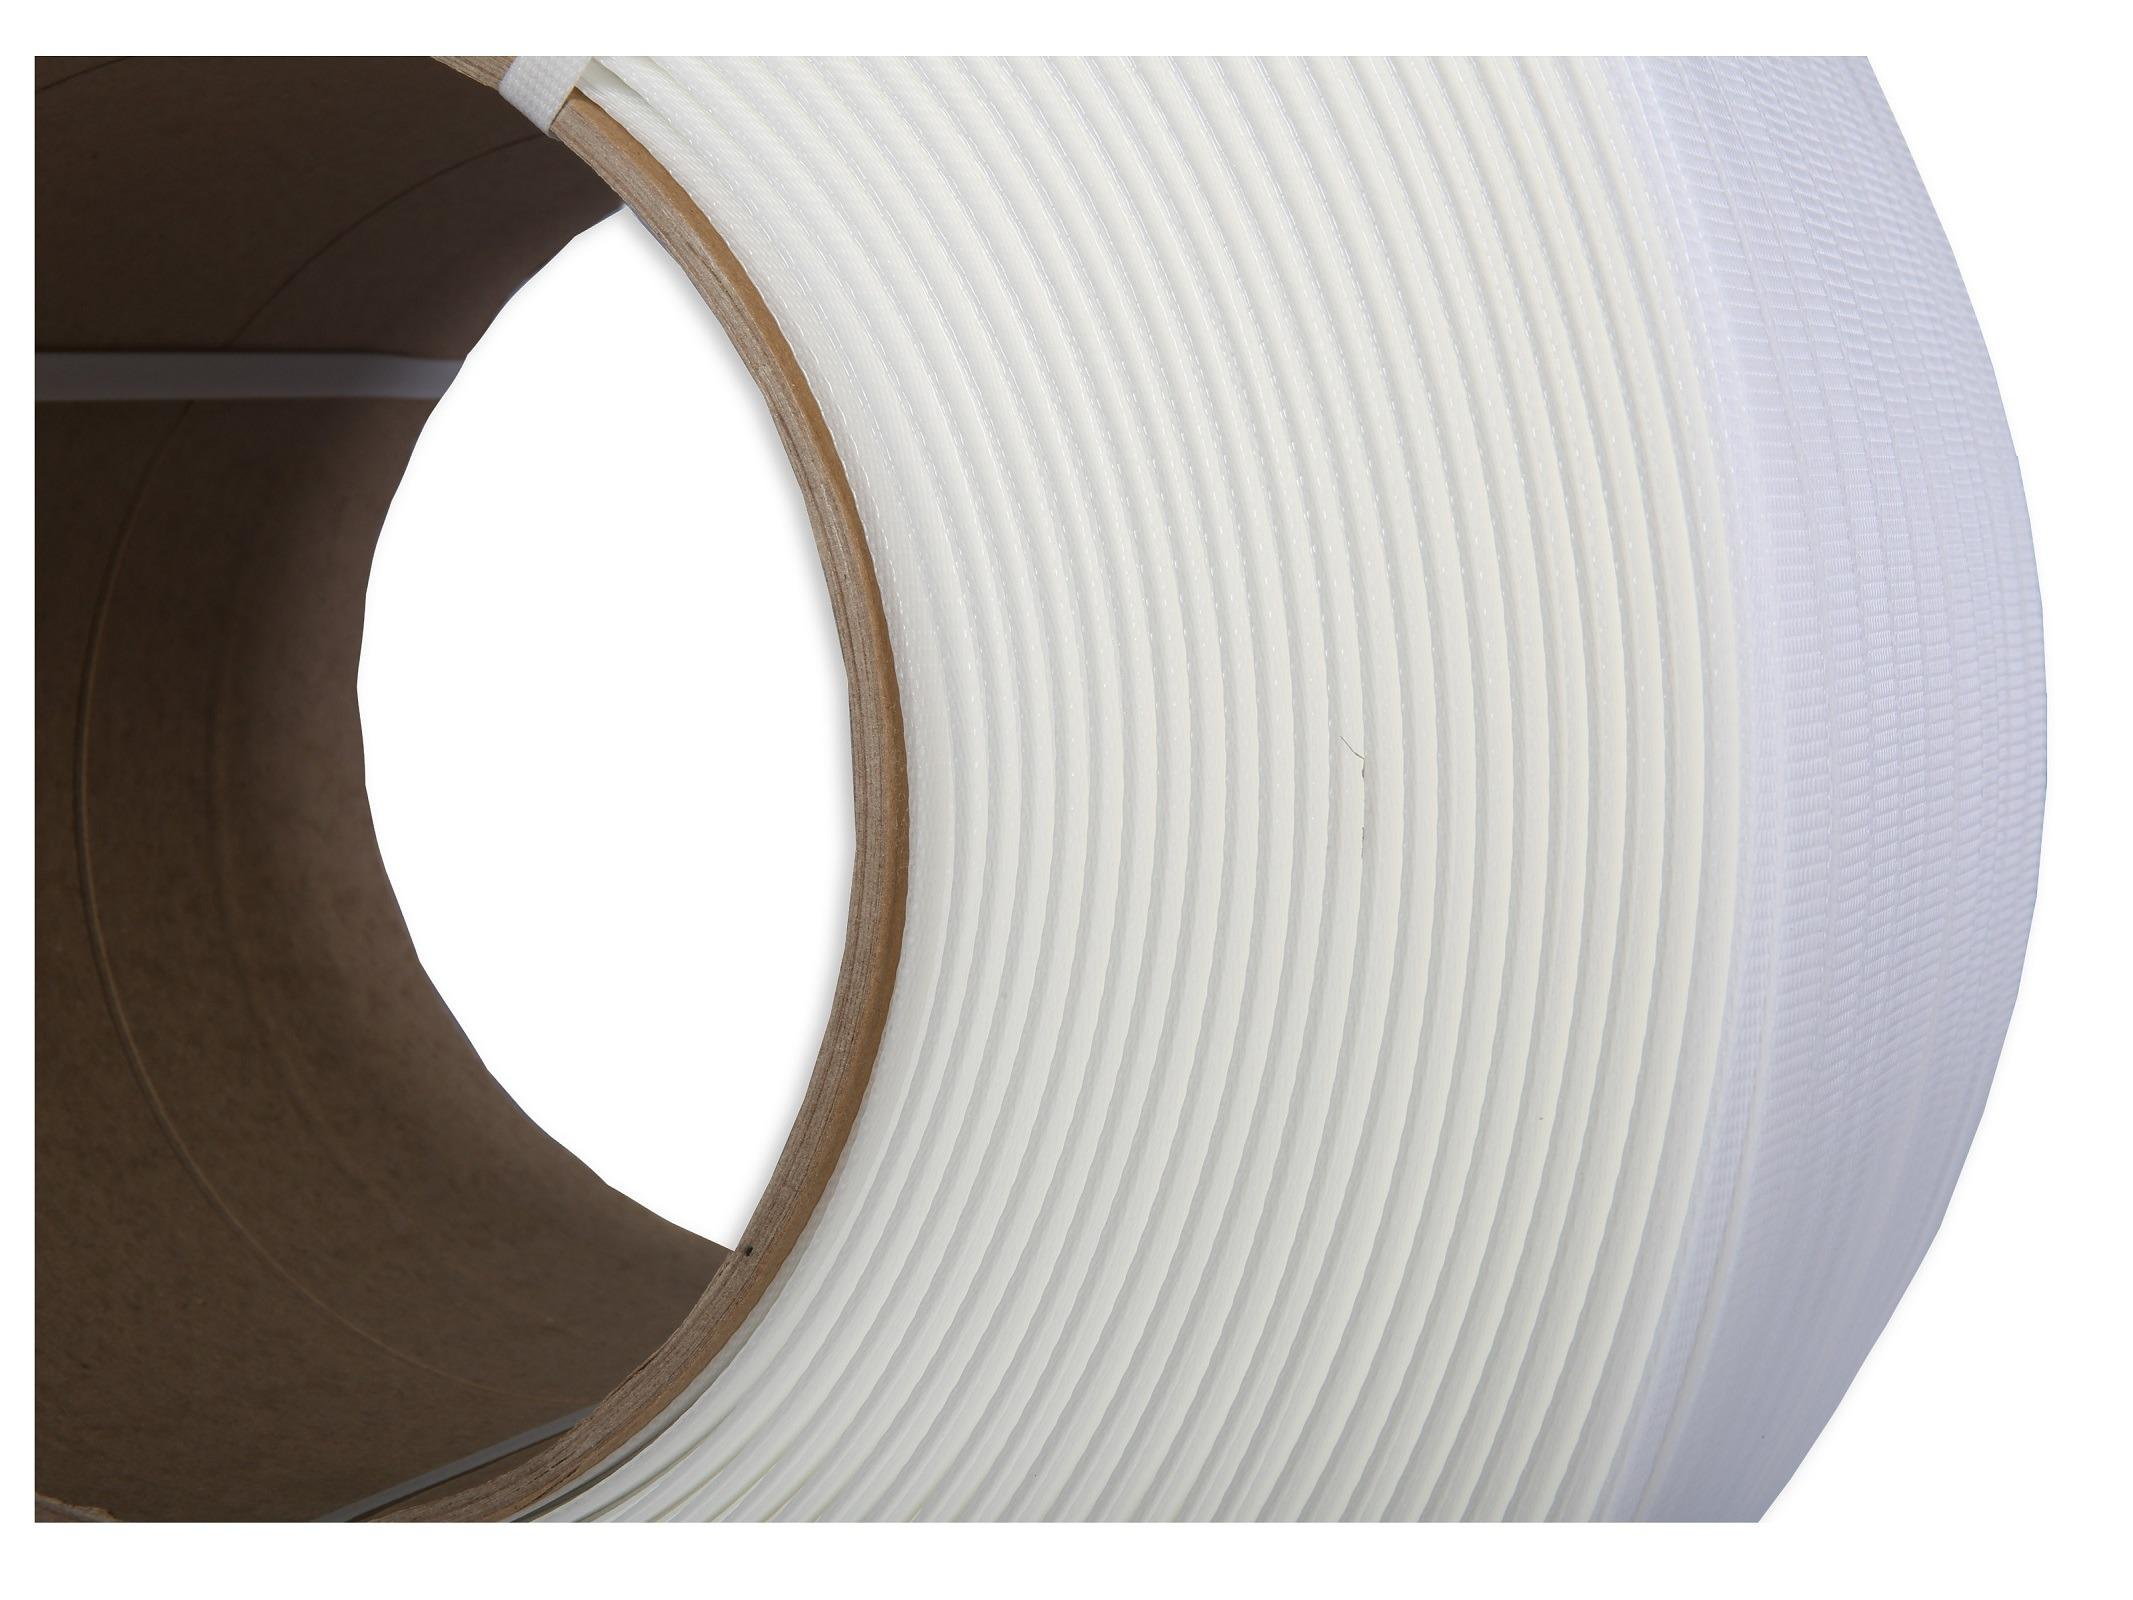 eng_pl_POLYPROPYLENE-STRAPPING-TAPE-9-mm-x-0-55-mm-88_3-1.jpg